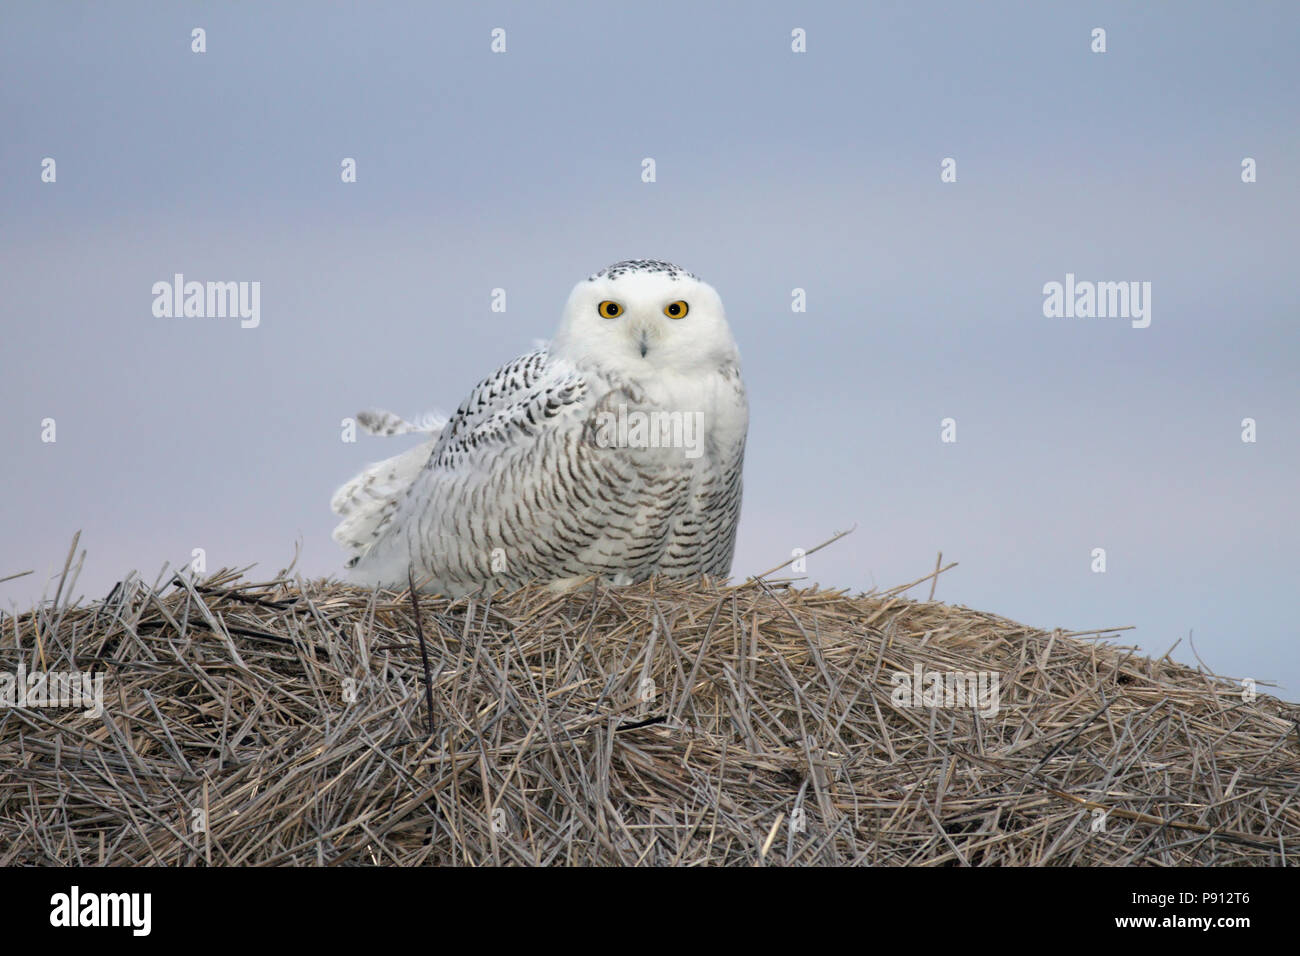 Snowy Owl on a hay bale. Taken right before dawn at Lake Andes National Wildlife Refuge, South Dakota, USA - Stock Image